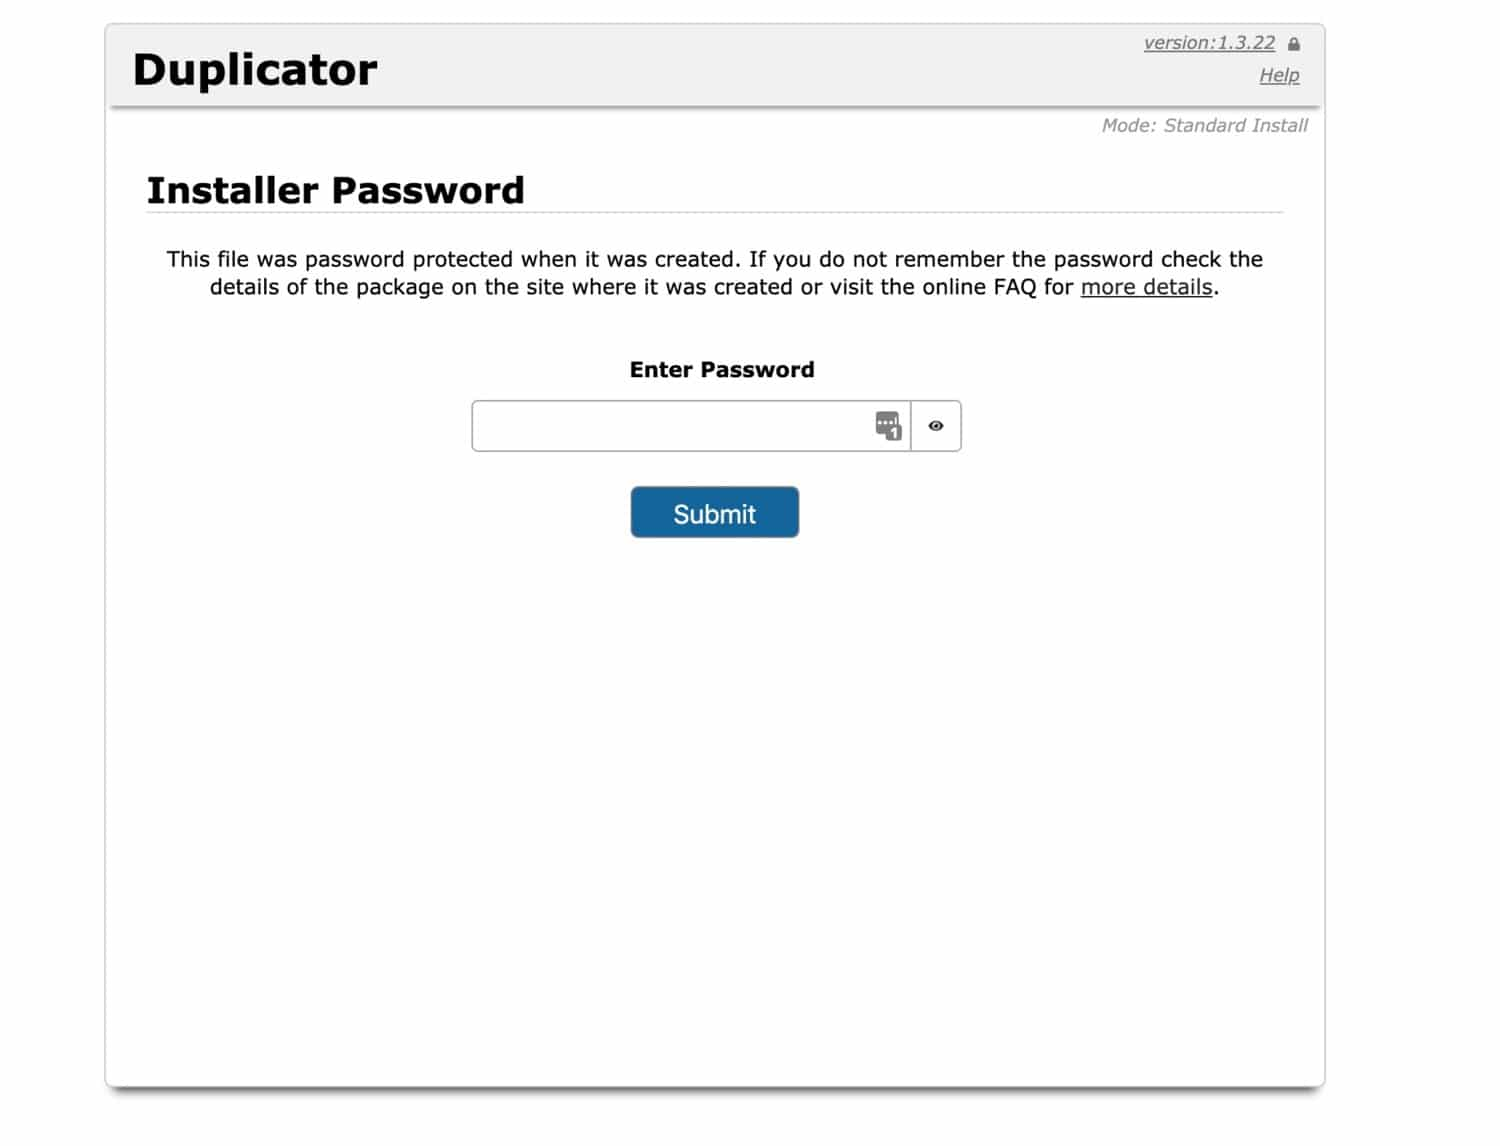 Duplicator password prompt